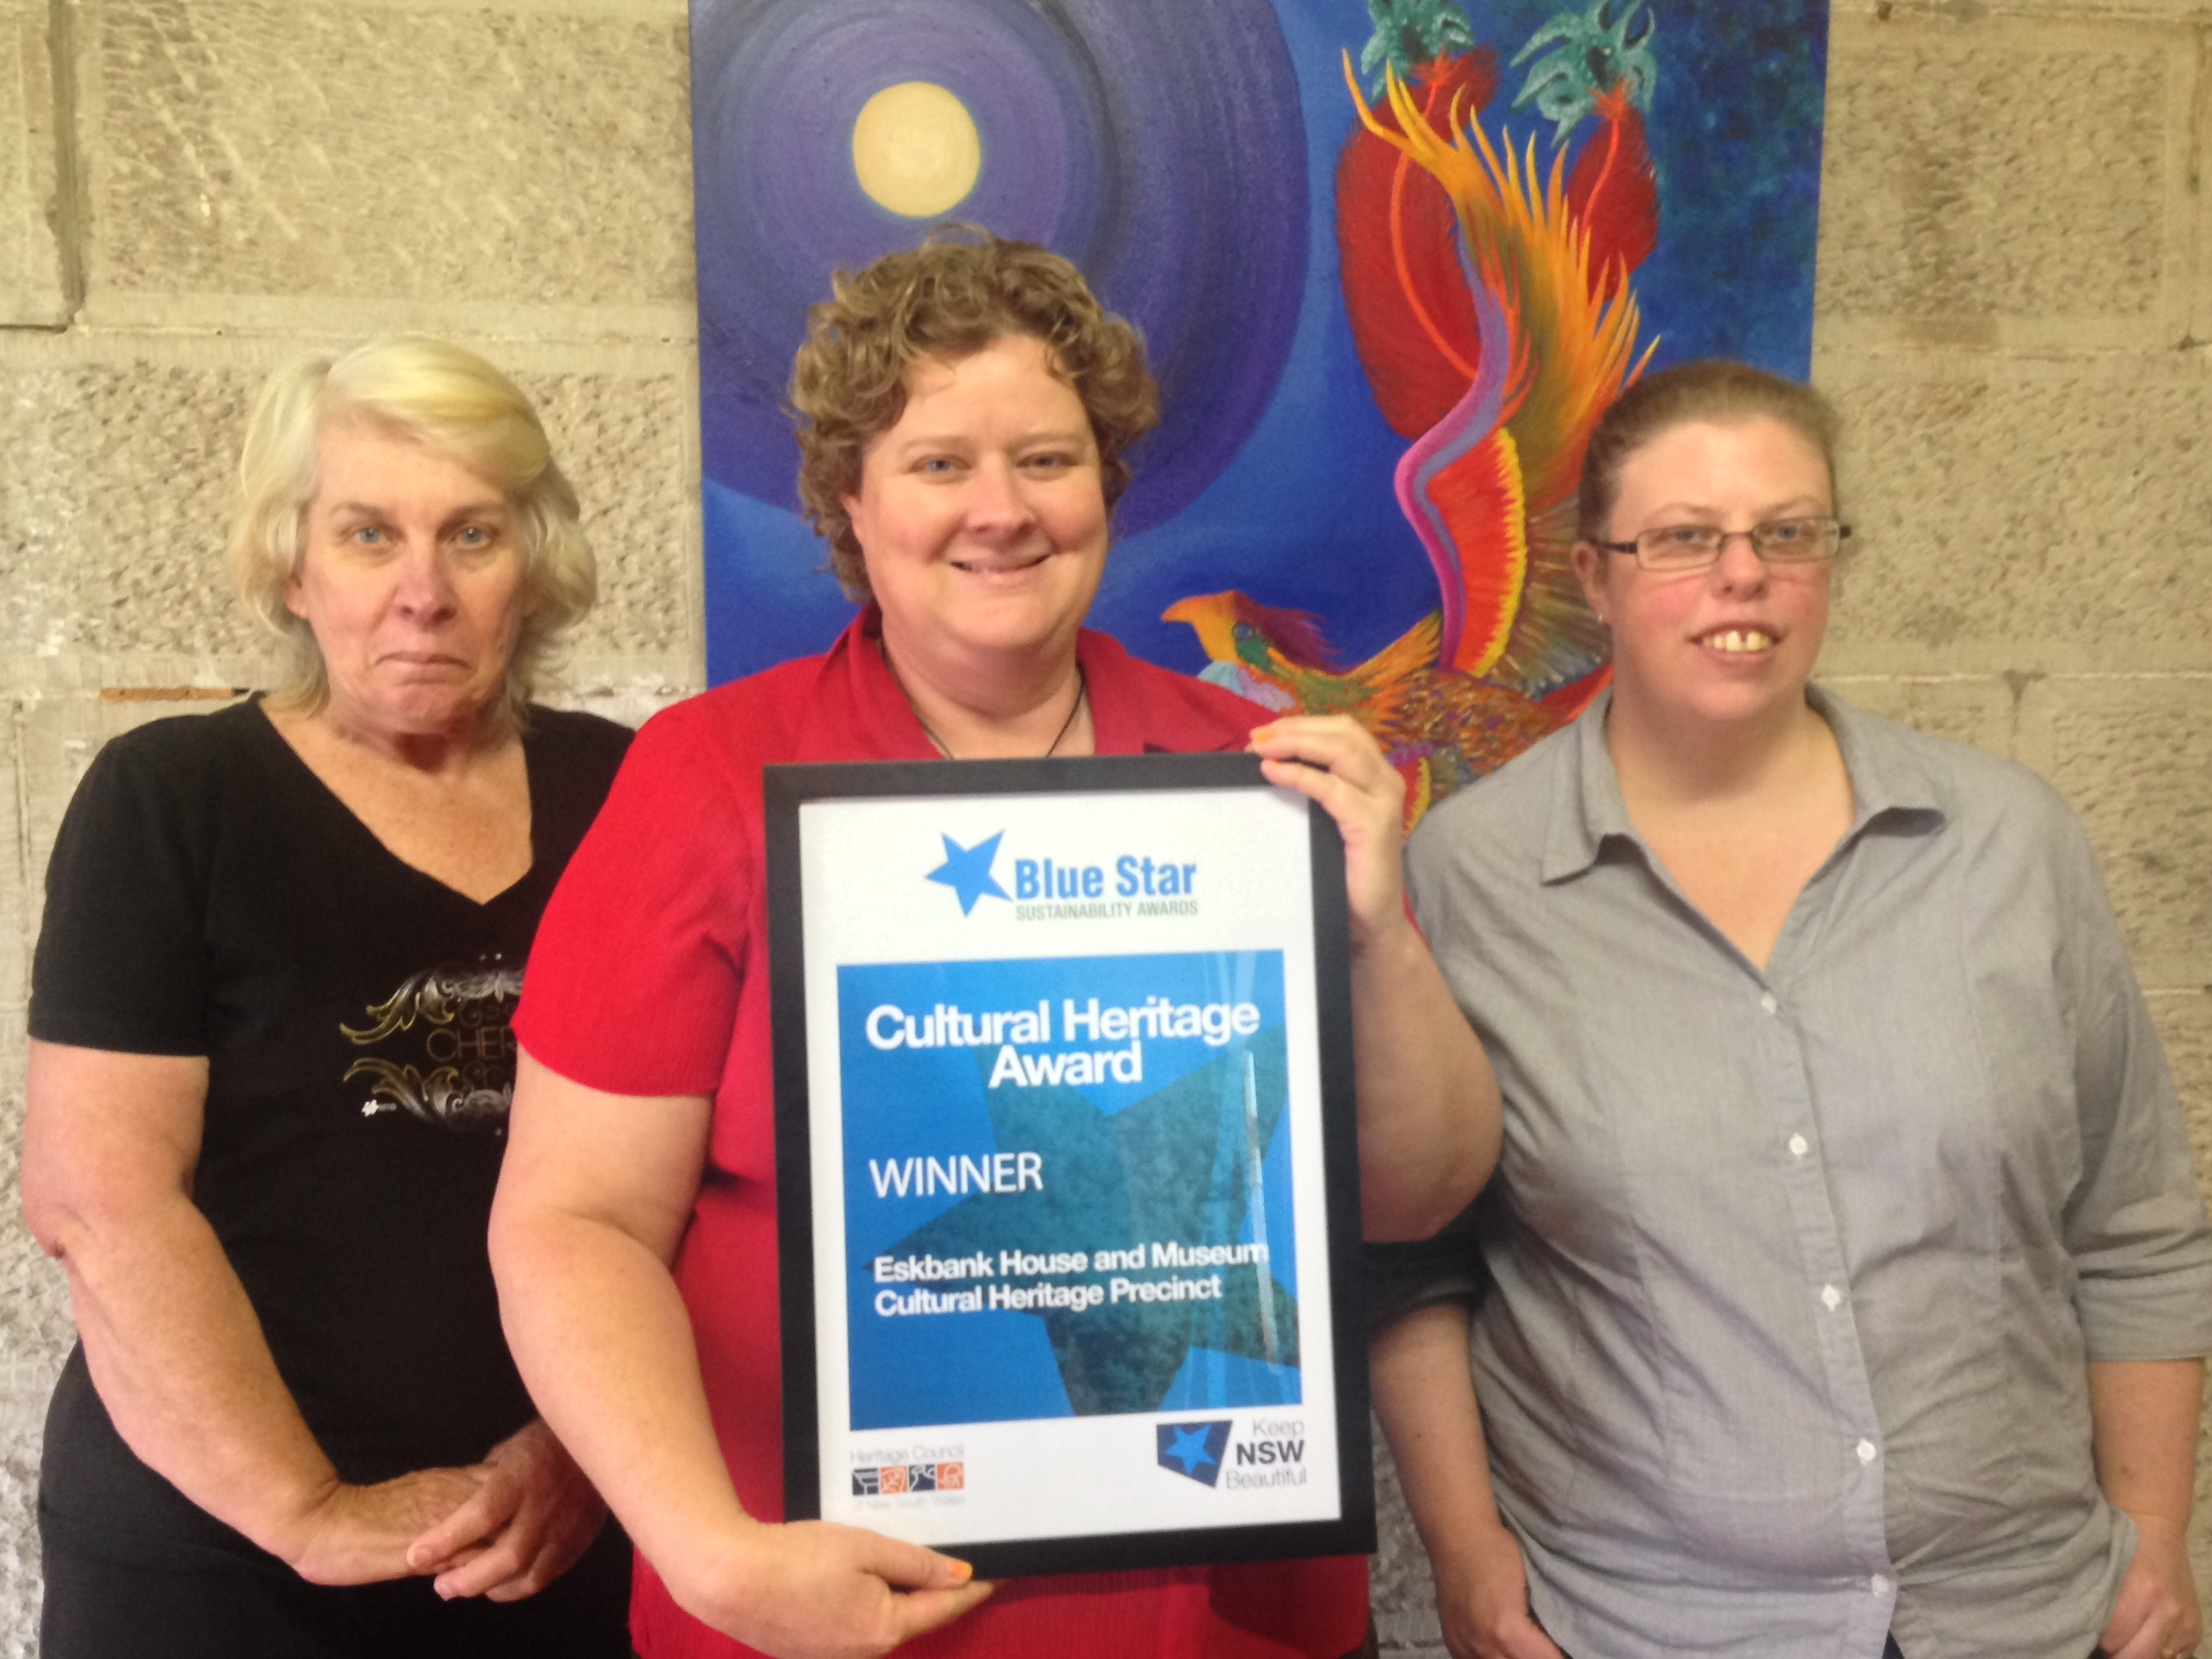 Eskbank House and Museum wins Blue Star Sustainability Cultural Heritage Award